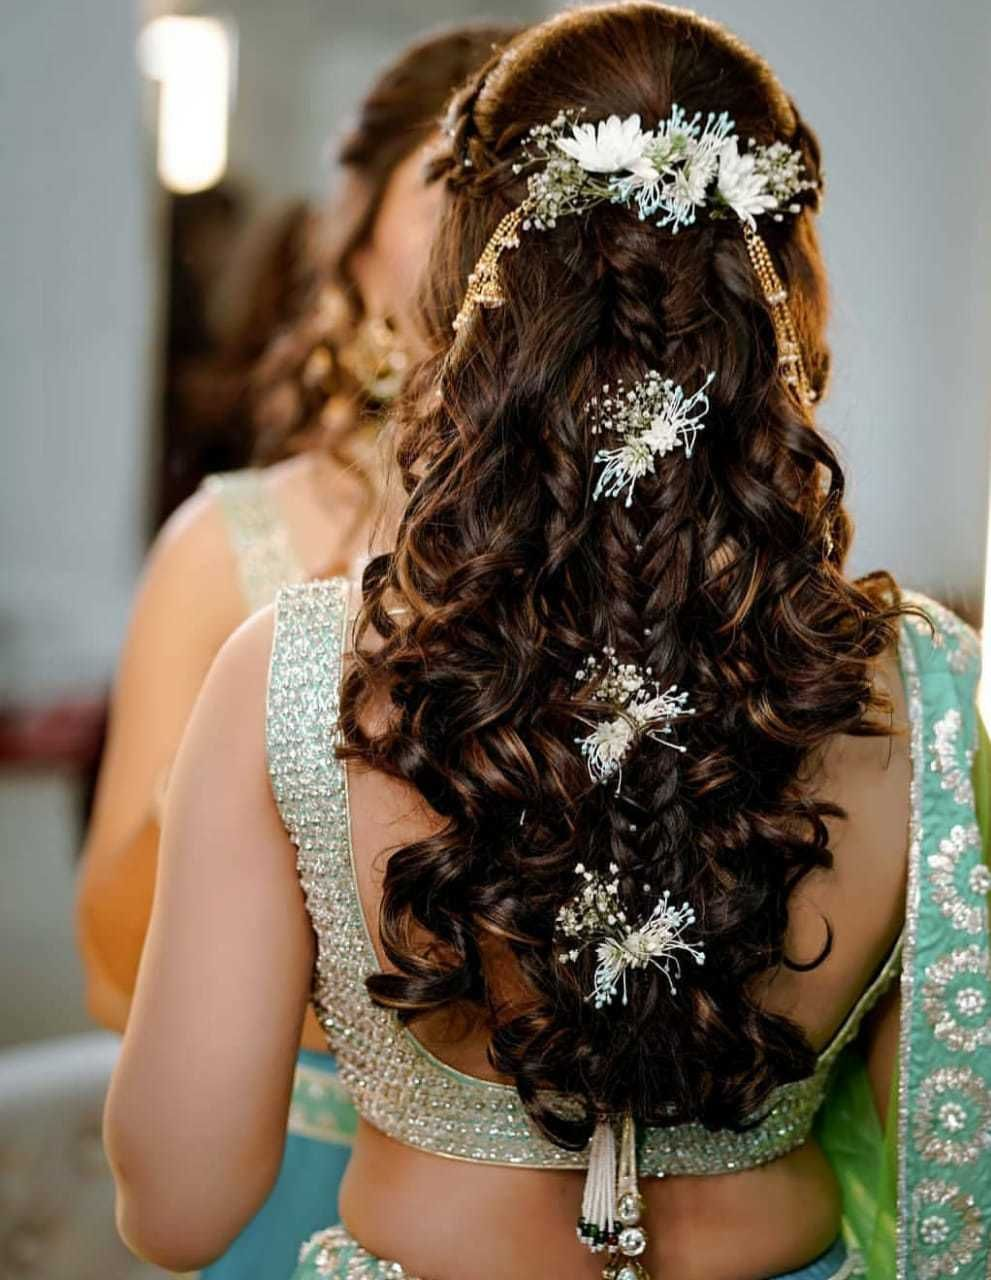 Photo of Half tied hairdo with soft curls, some braids, and flowers.